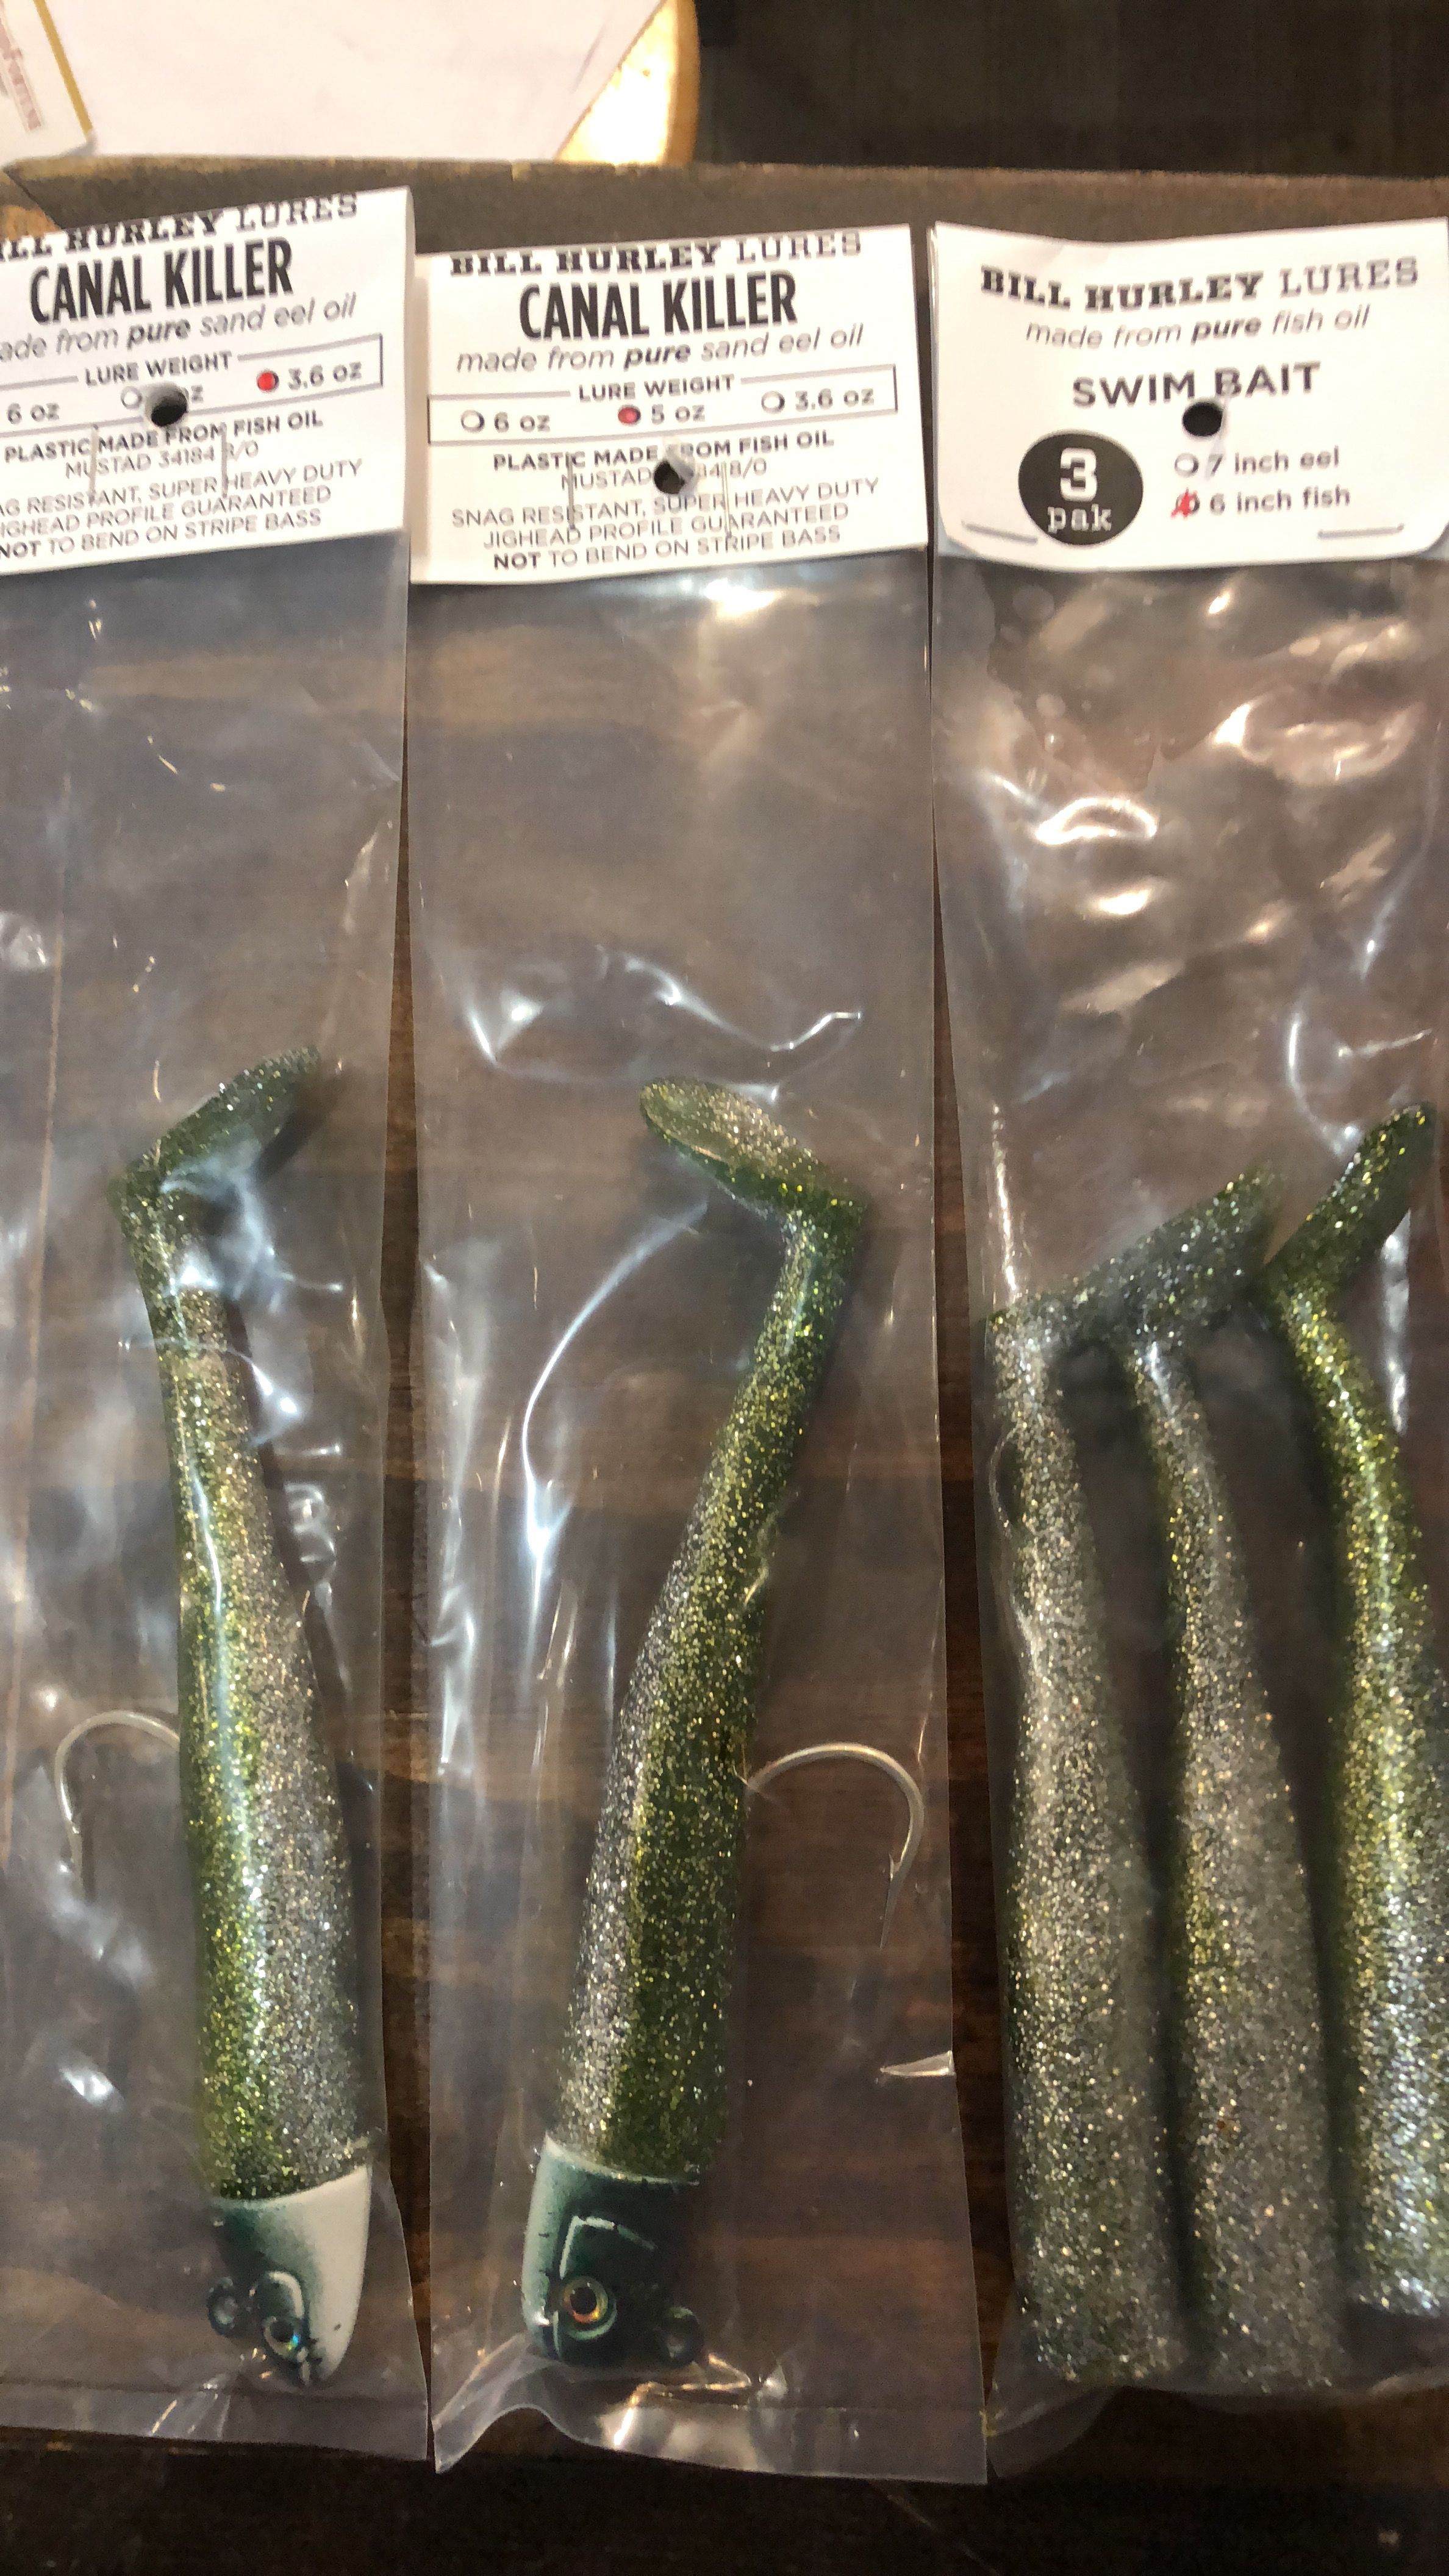 Pin on Best Striped Bass Fishing Lures